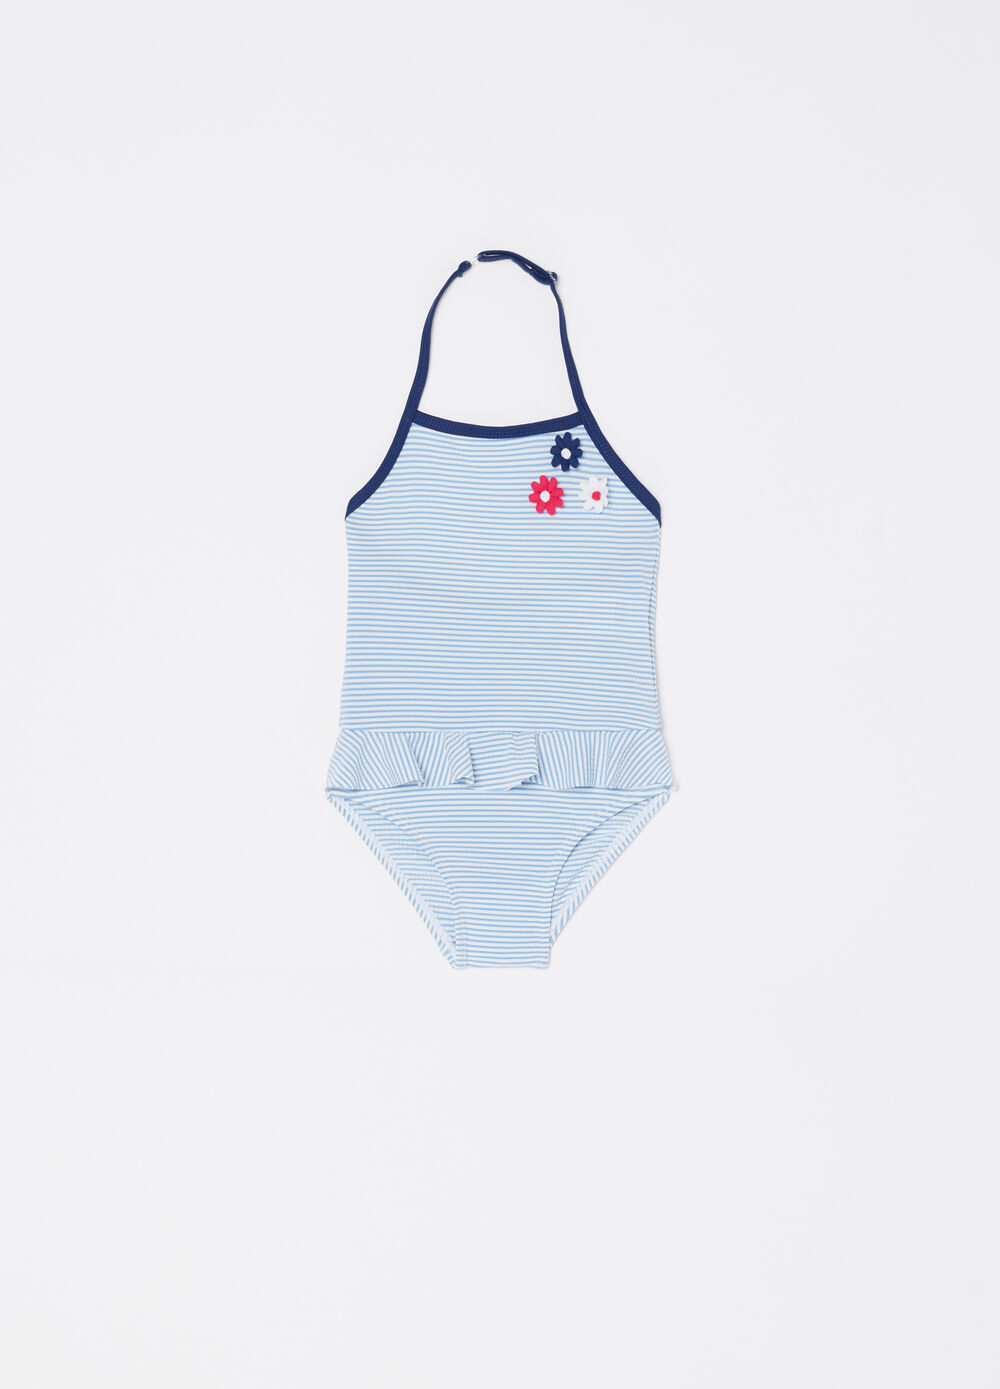 One-piece swimsuit with striped pattern and flowers